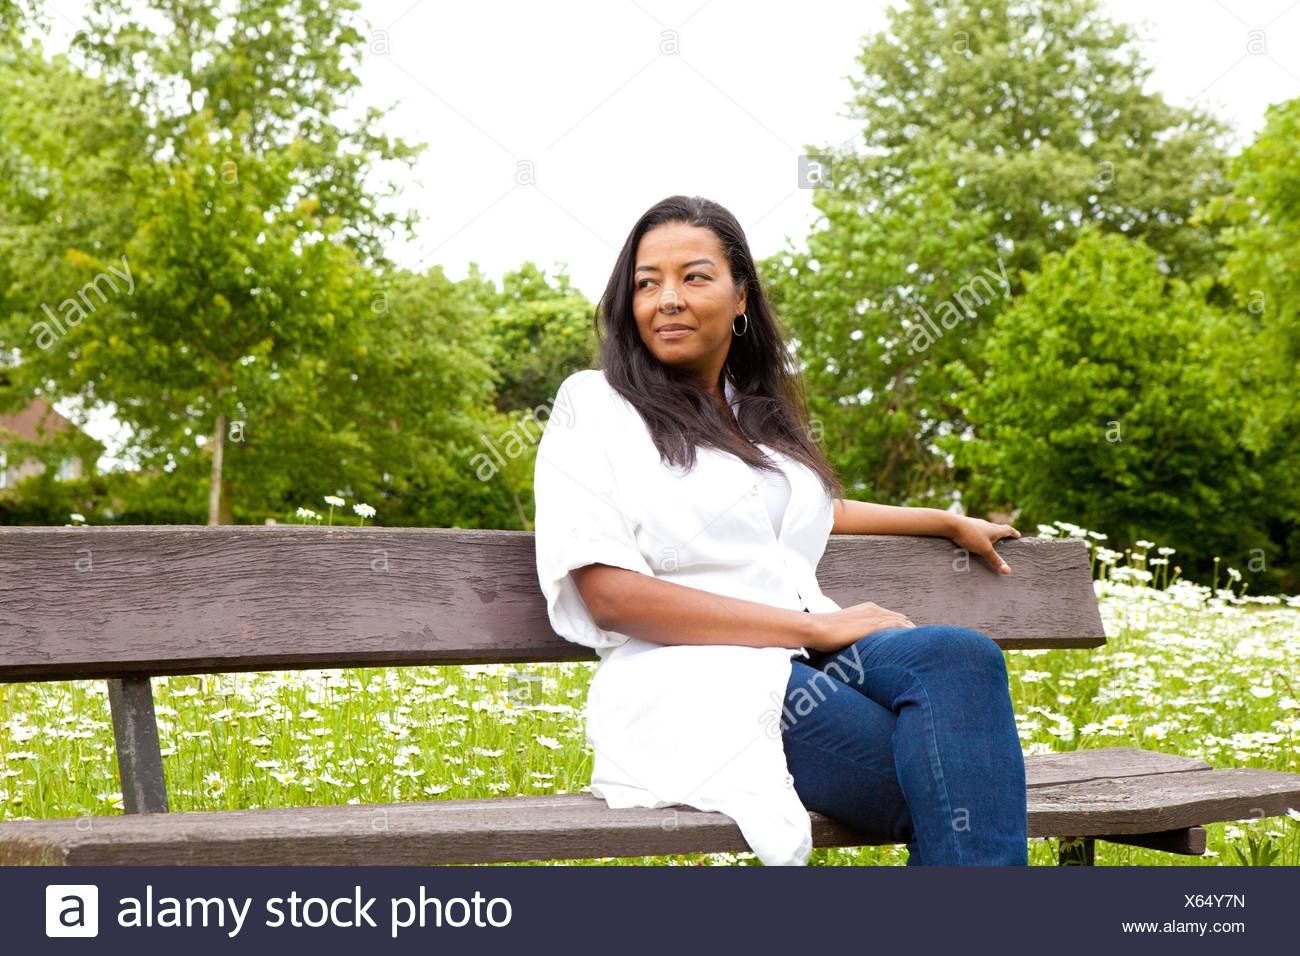 Mature woman looking out from park bench - Stock Image